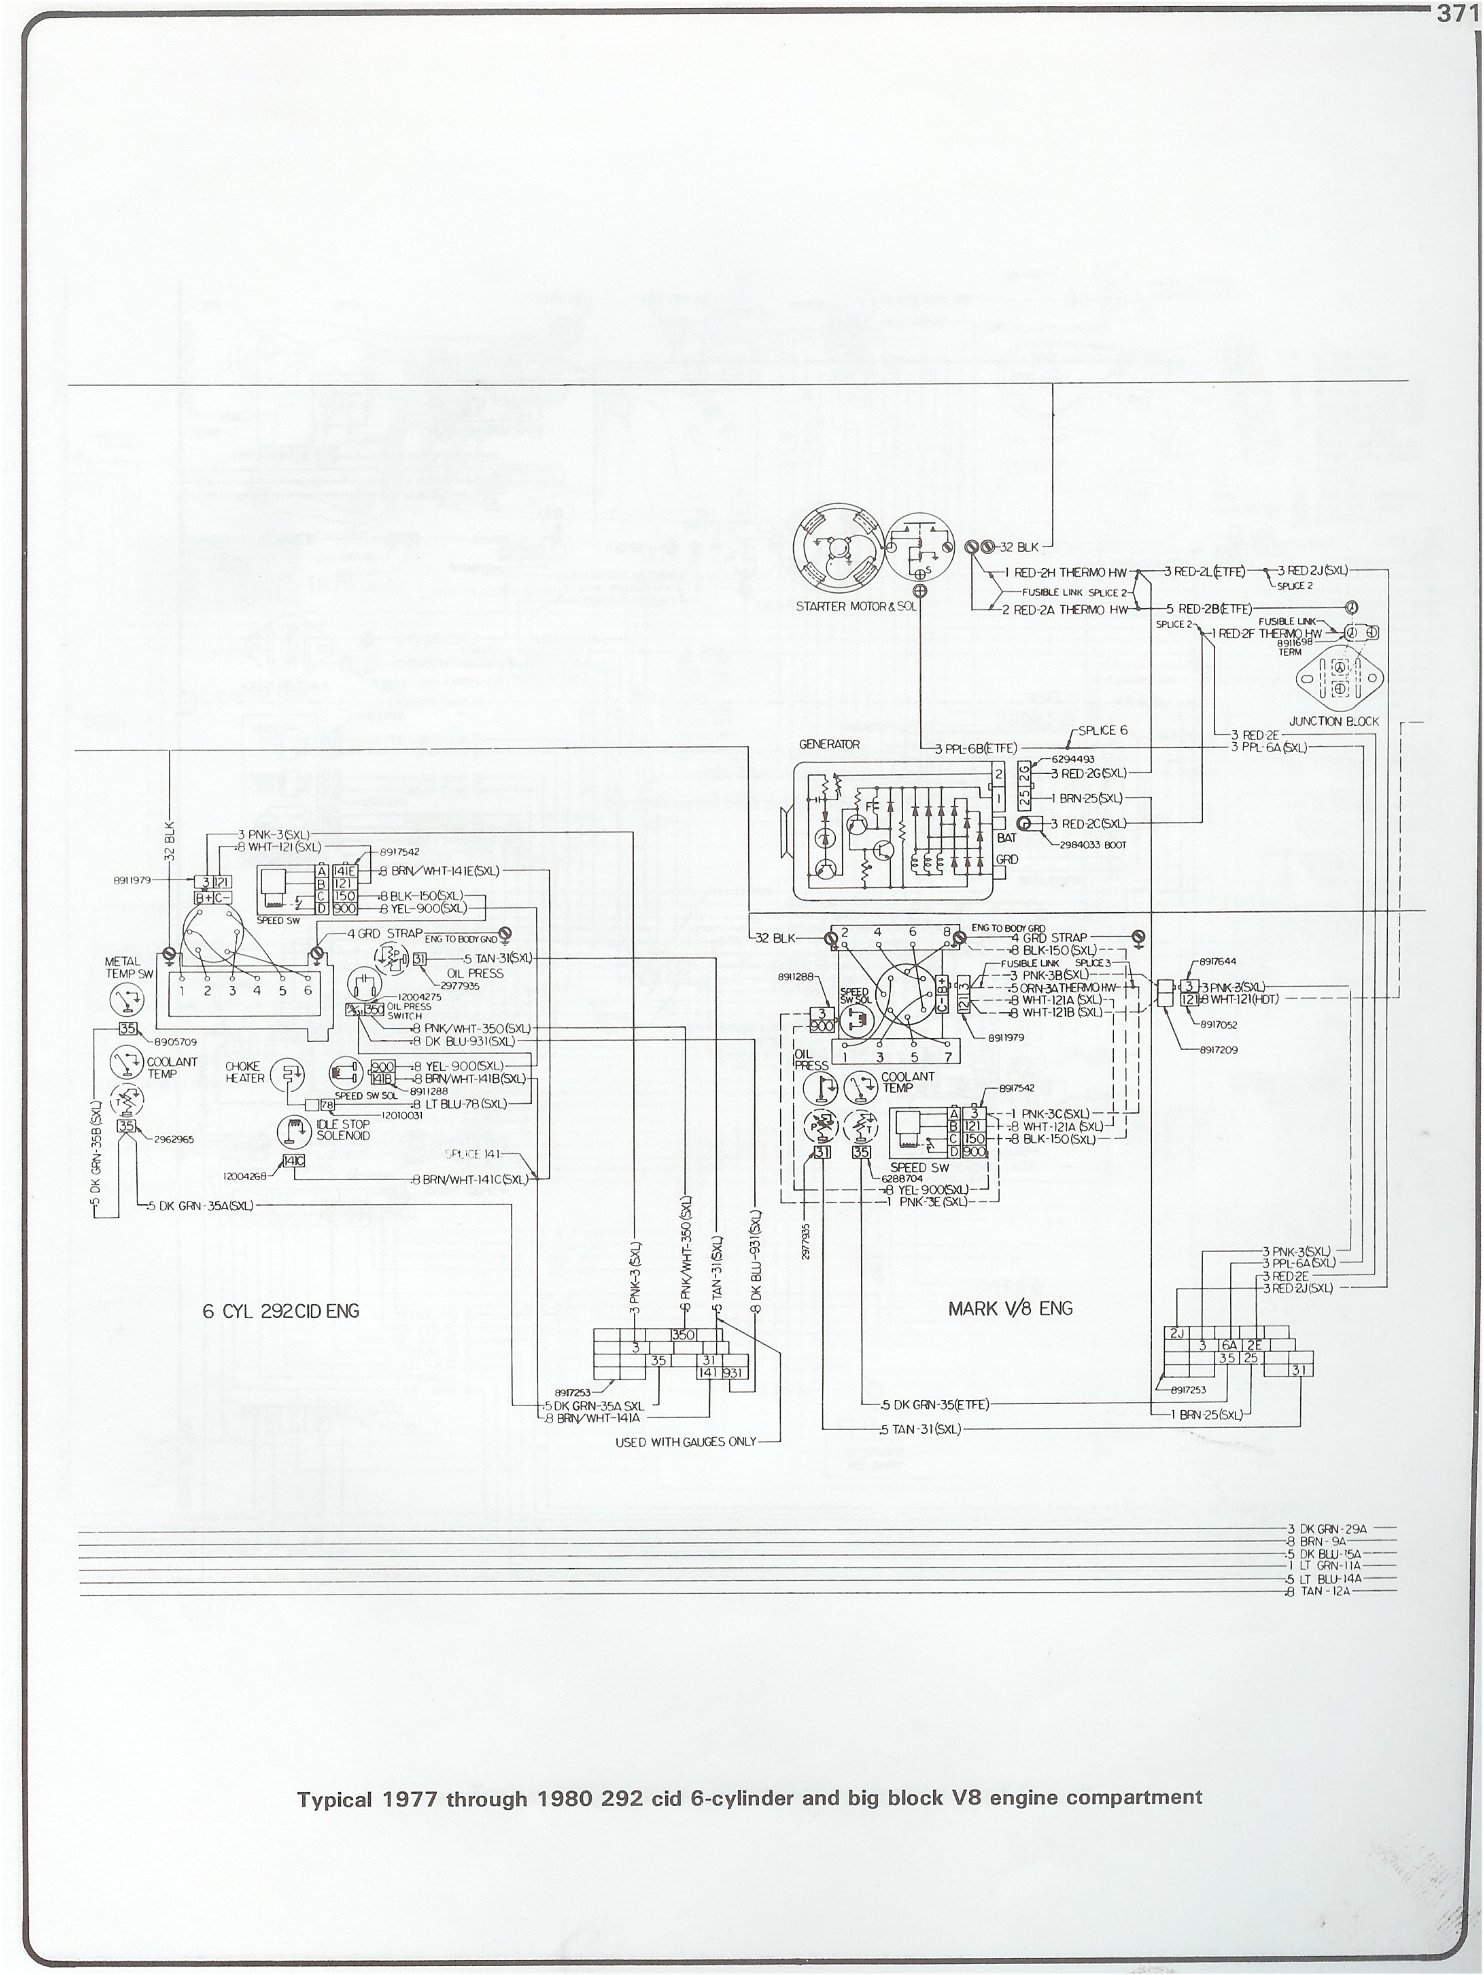 1980 Gmc 35 Wiring Diagram Worksheet And 2013 Chevy Van Complete 73 87 Diagrams Rh Forum 87chevytrucks Com Radio